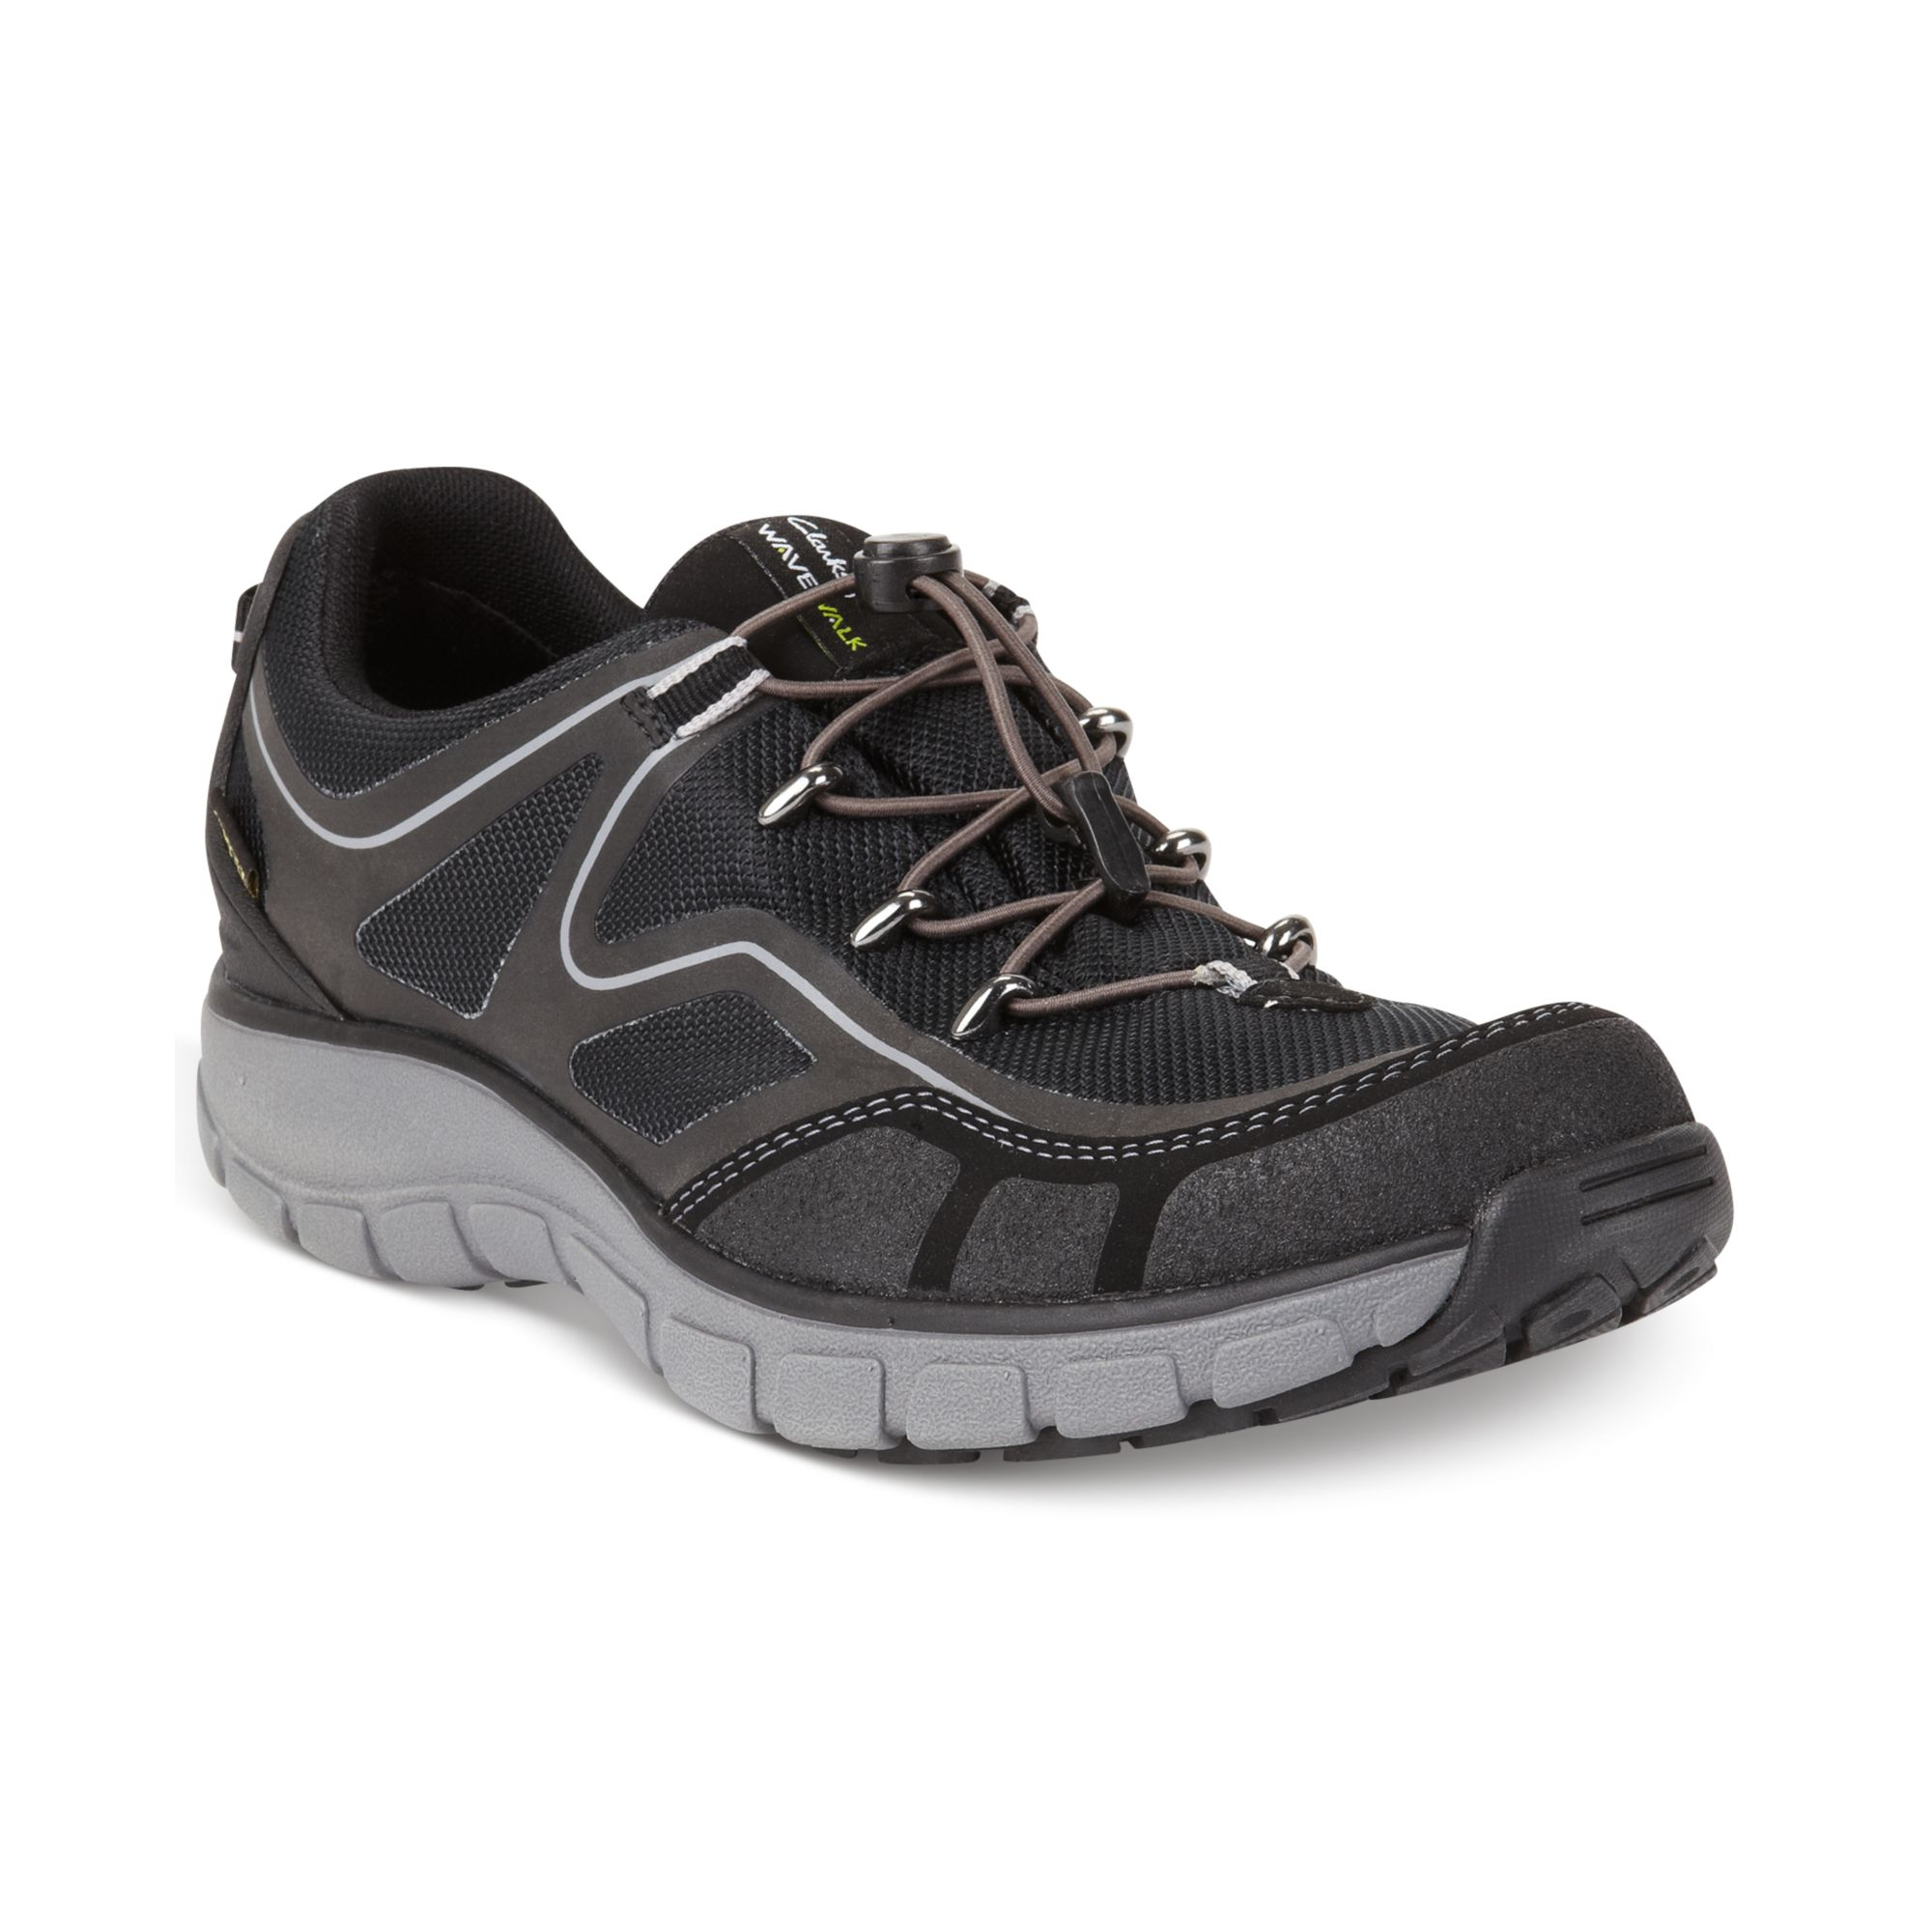 Clarks Wave Trail Shoes Lace Ups For Men